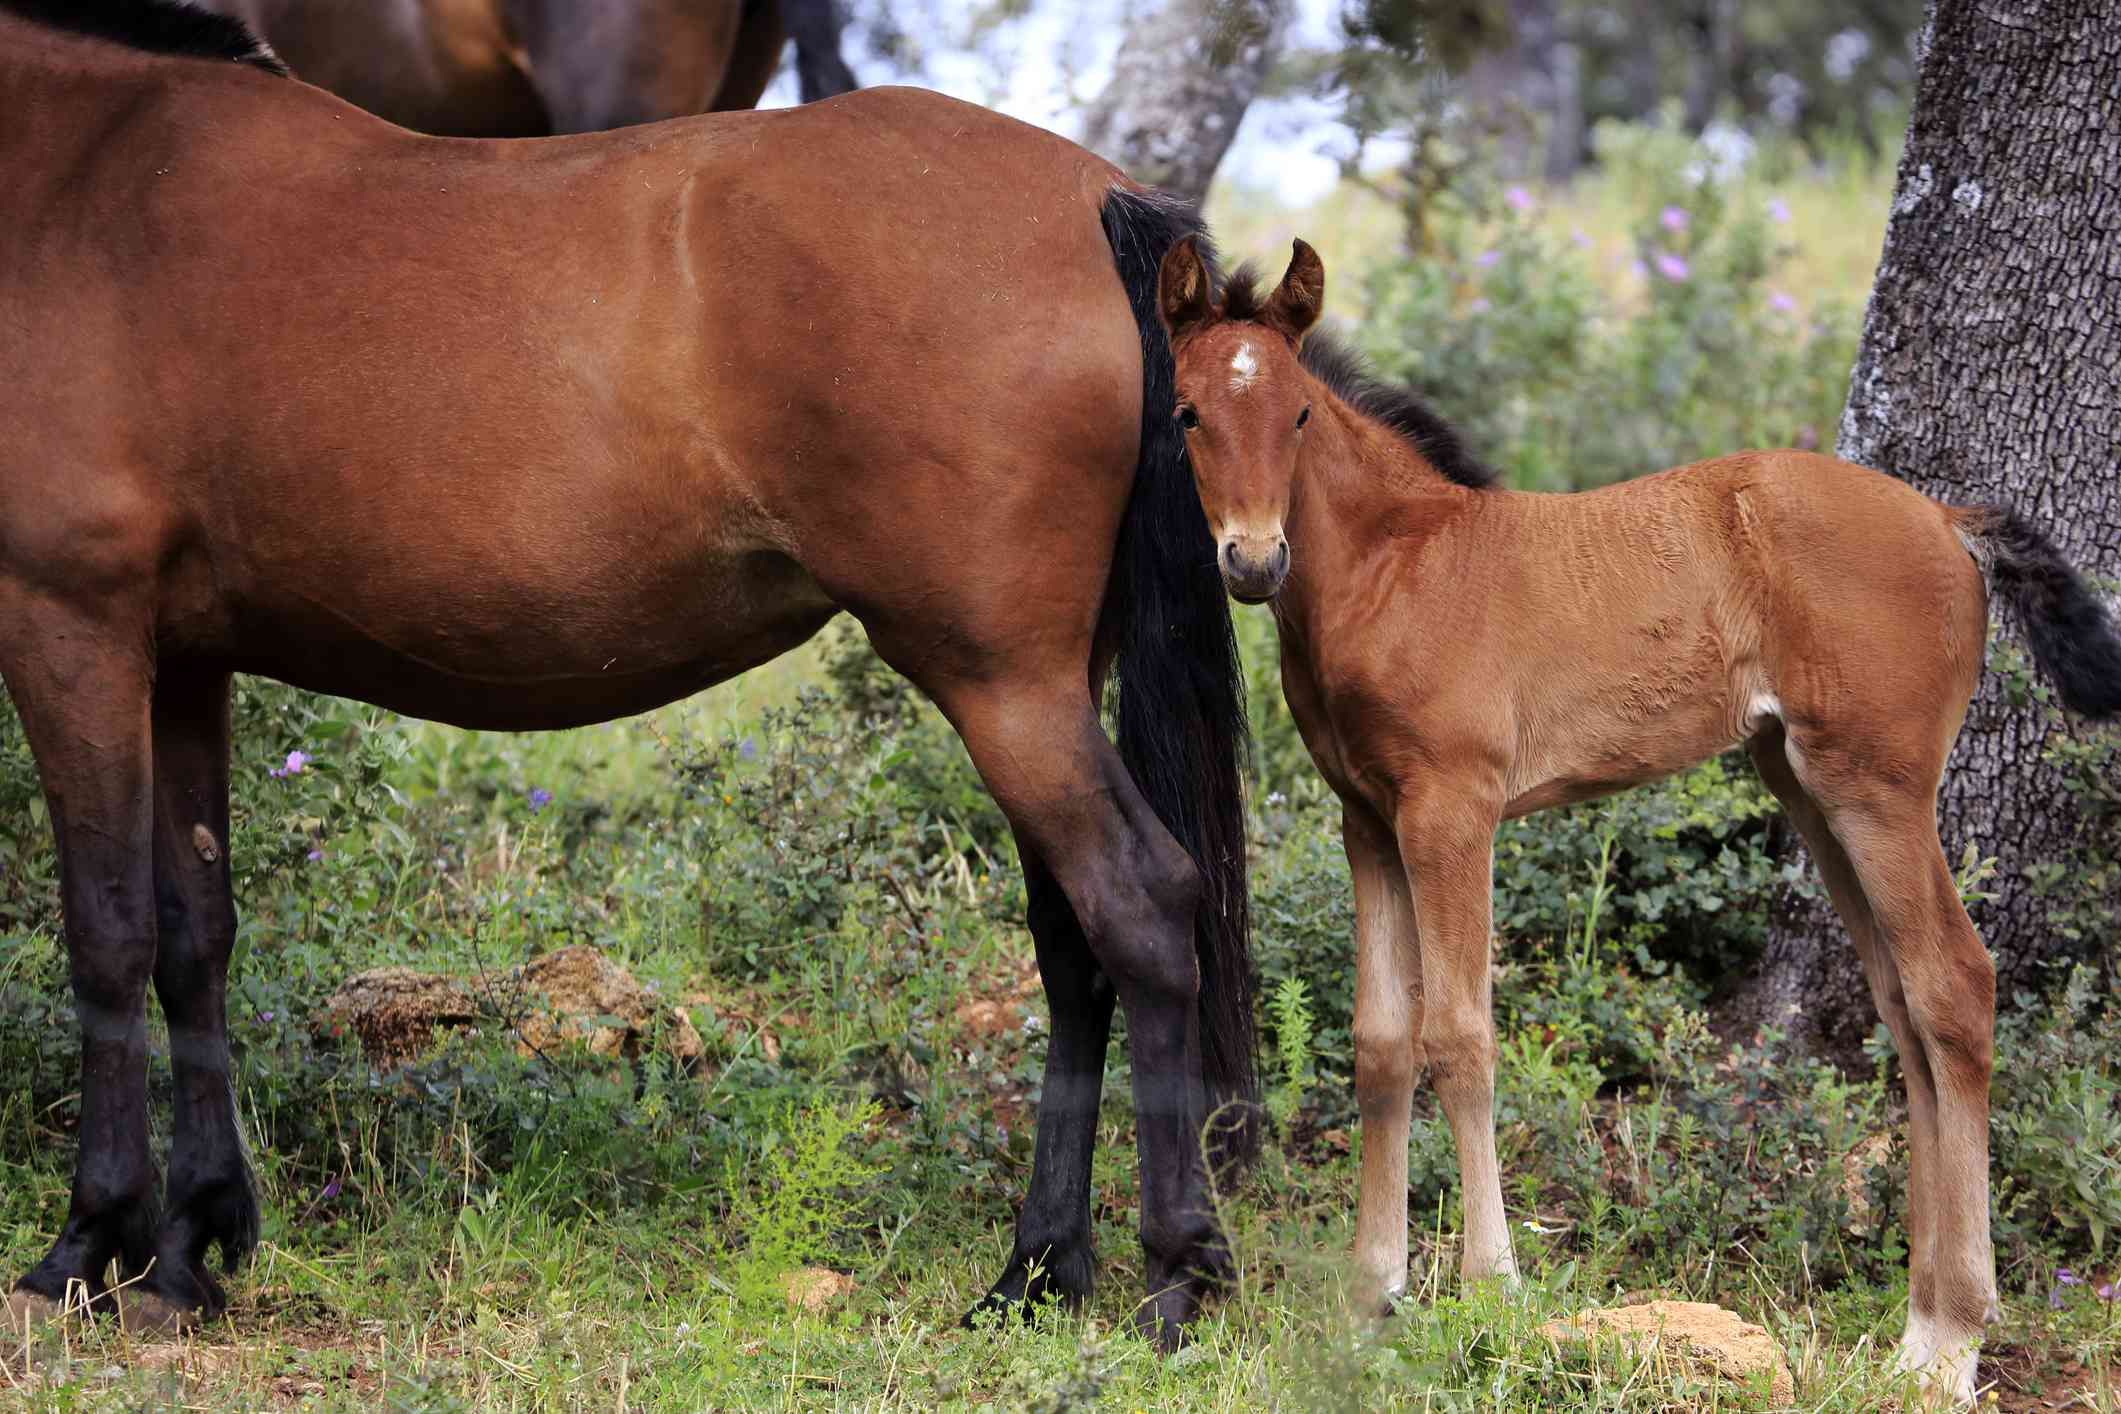 Bay Andalusian mare and foal in a paddock